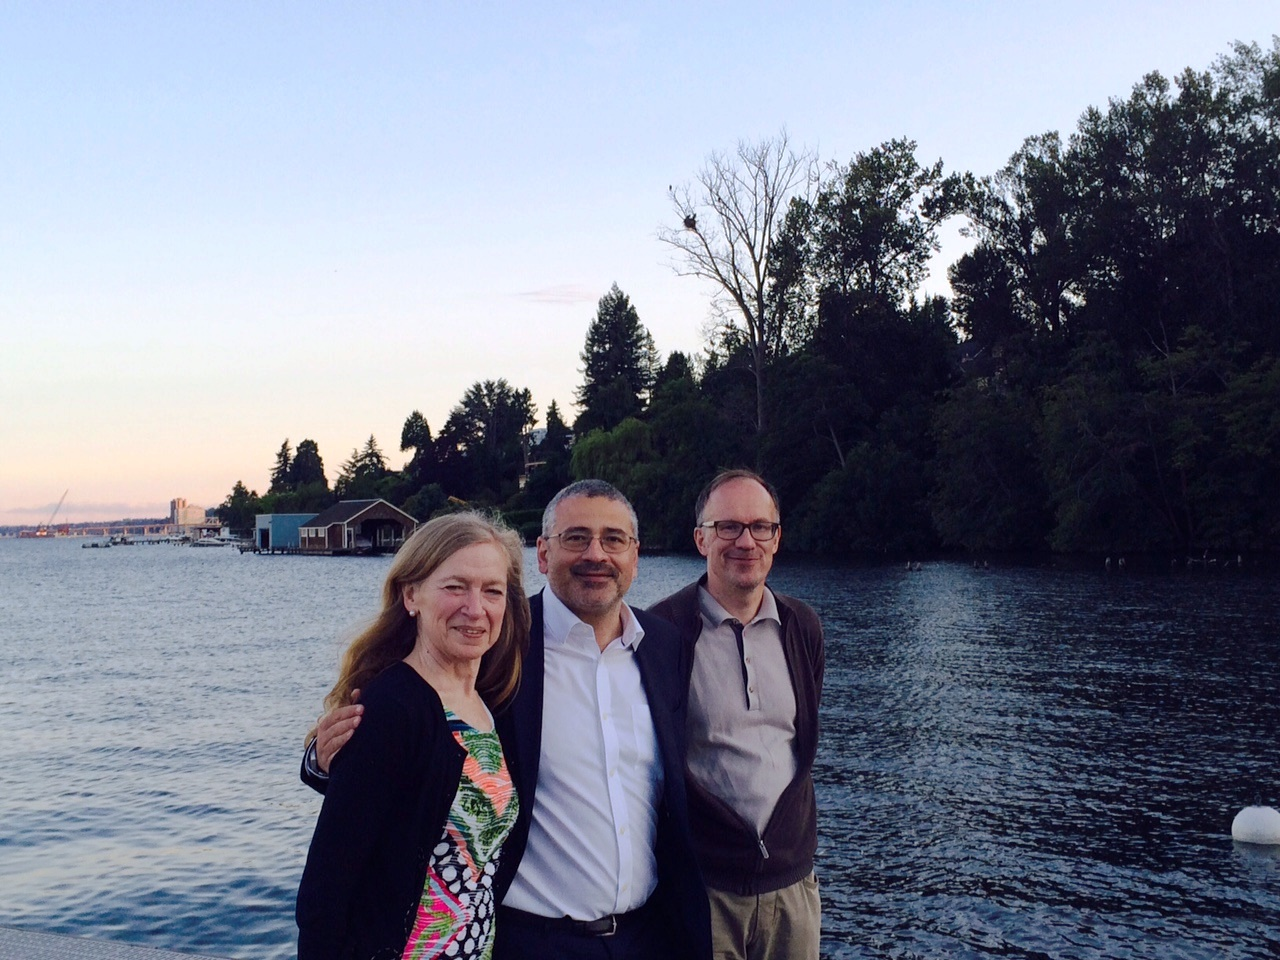 Betz Halloran, Alex Vespignani, Kari Auranen, at Lake Washington. Bald eagle nest in the background.